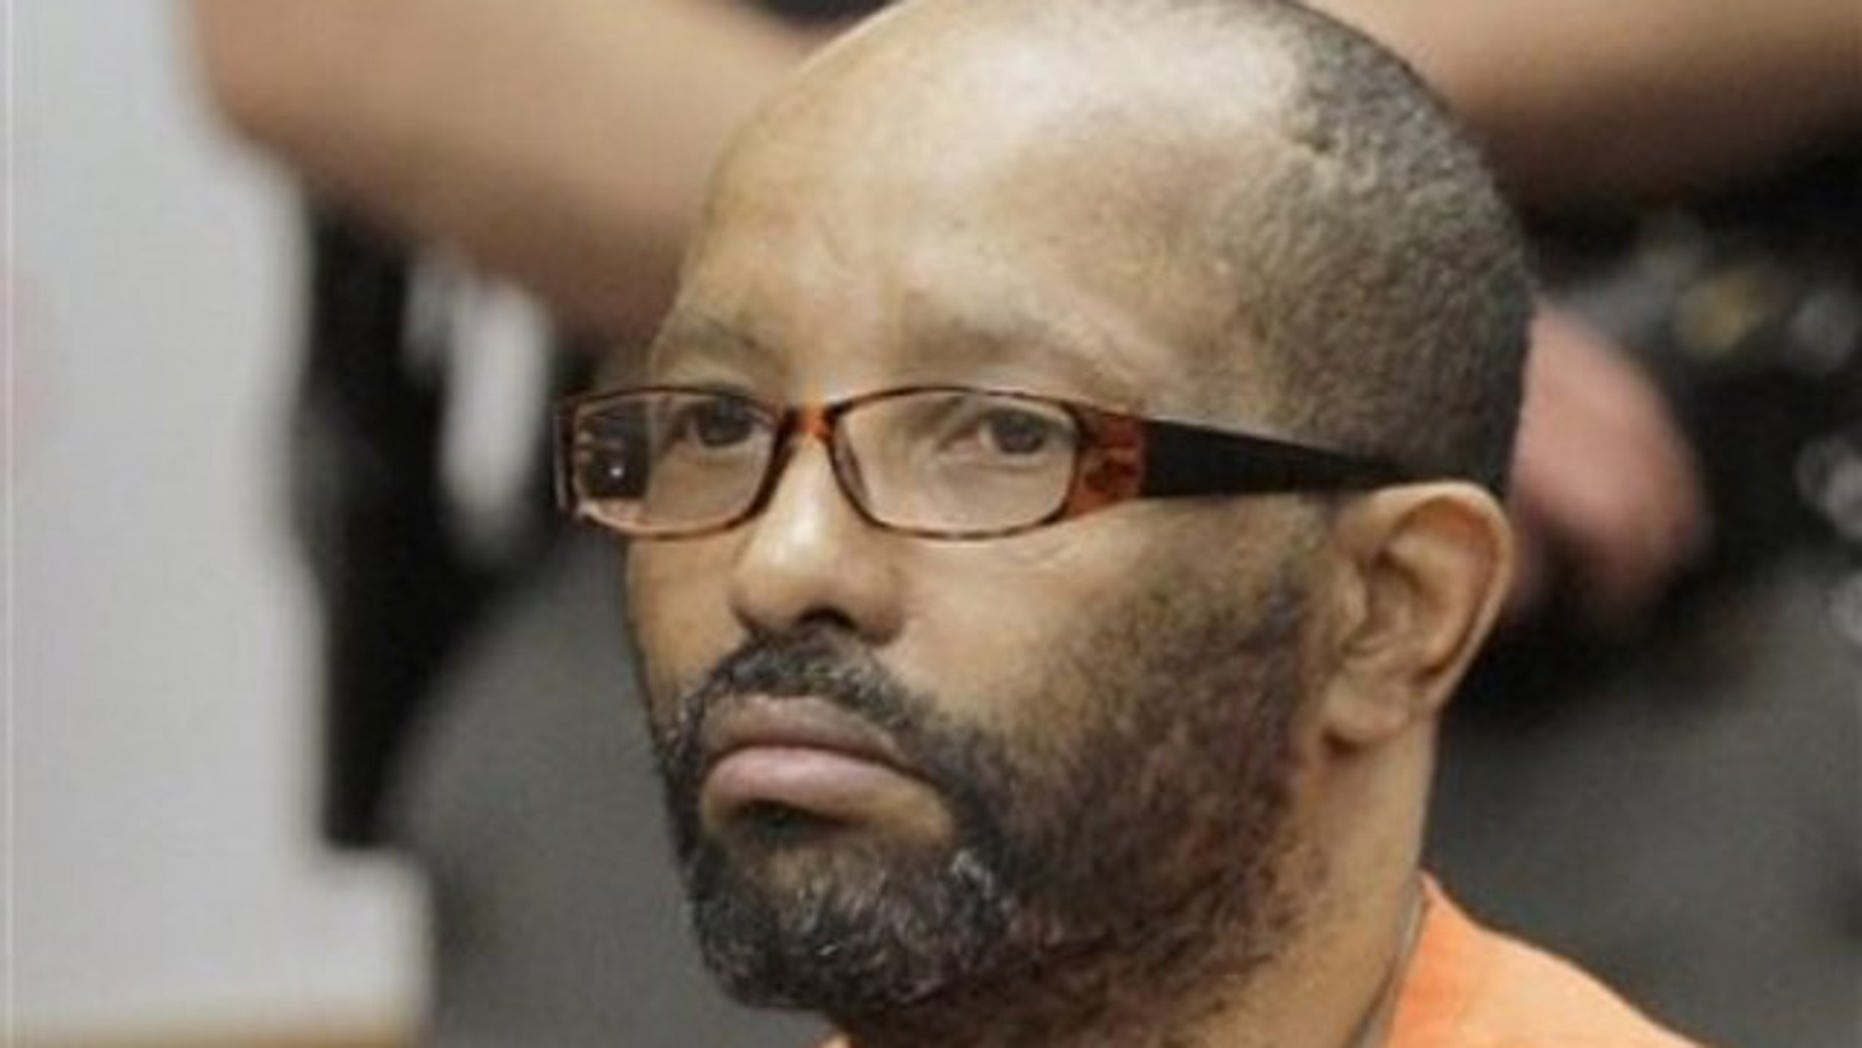 May 10, 2011: Anthony Sowell appears in court in Cleveland.